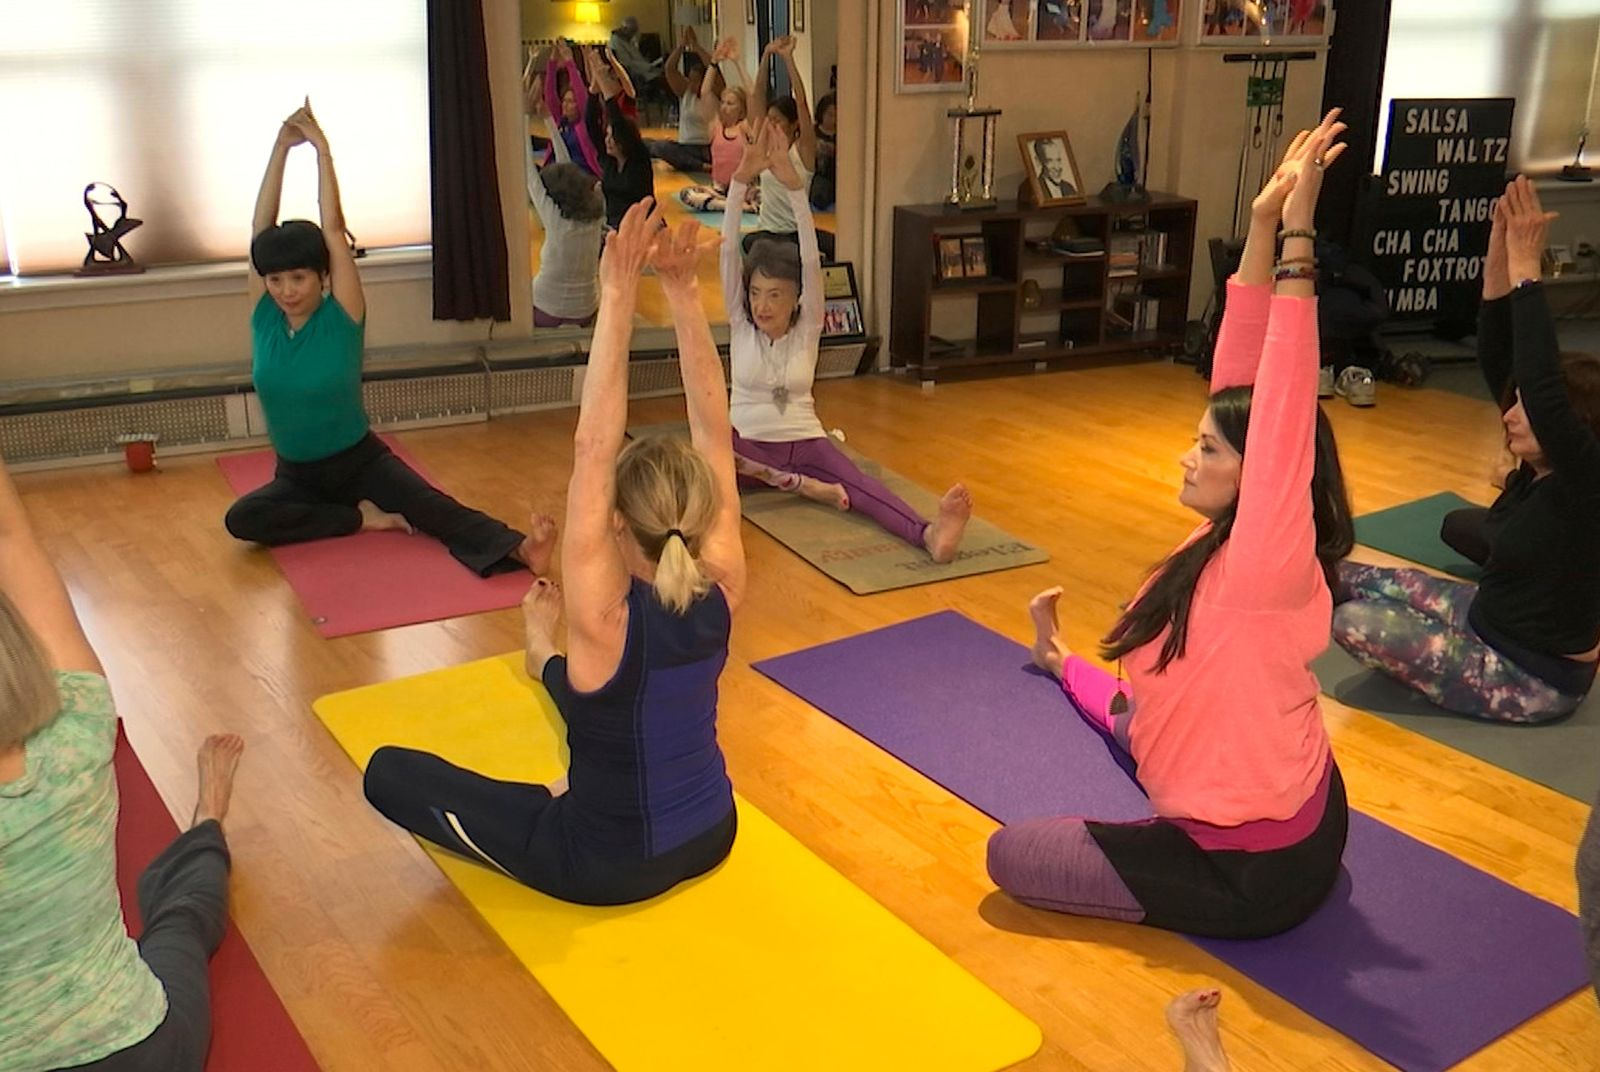 In this April 5, 2019, image made from a video, 100-year-old Tao Porchon-Lynch, rear right,  teaches a yoga class in Hartsdale, N.Y. (AP Photo/Ted Shaffrey)